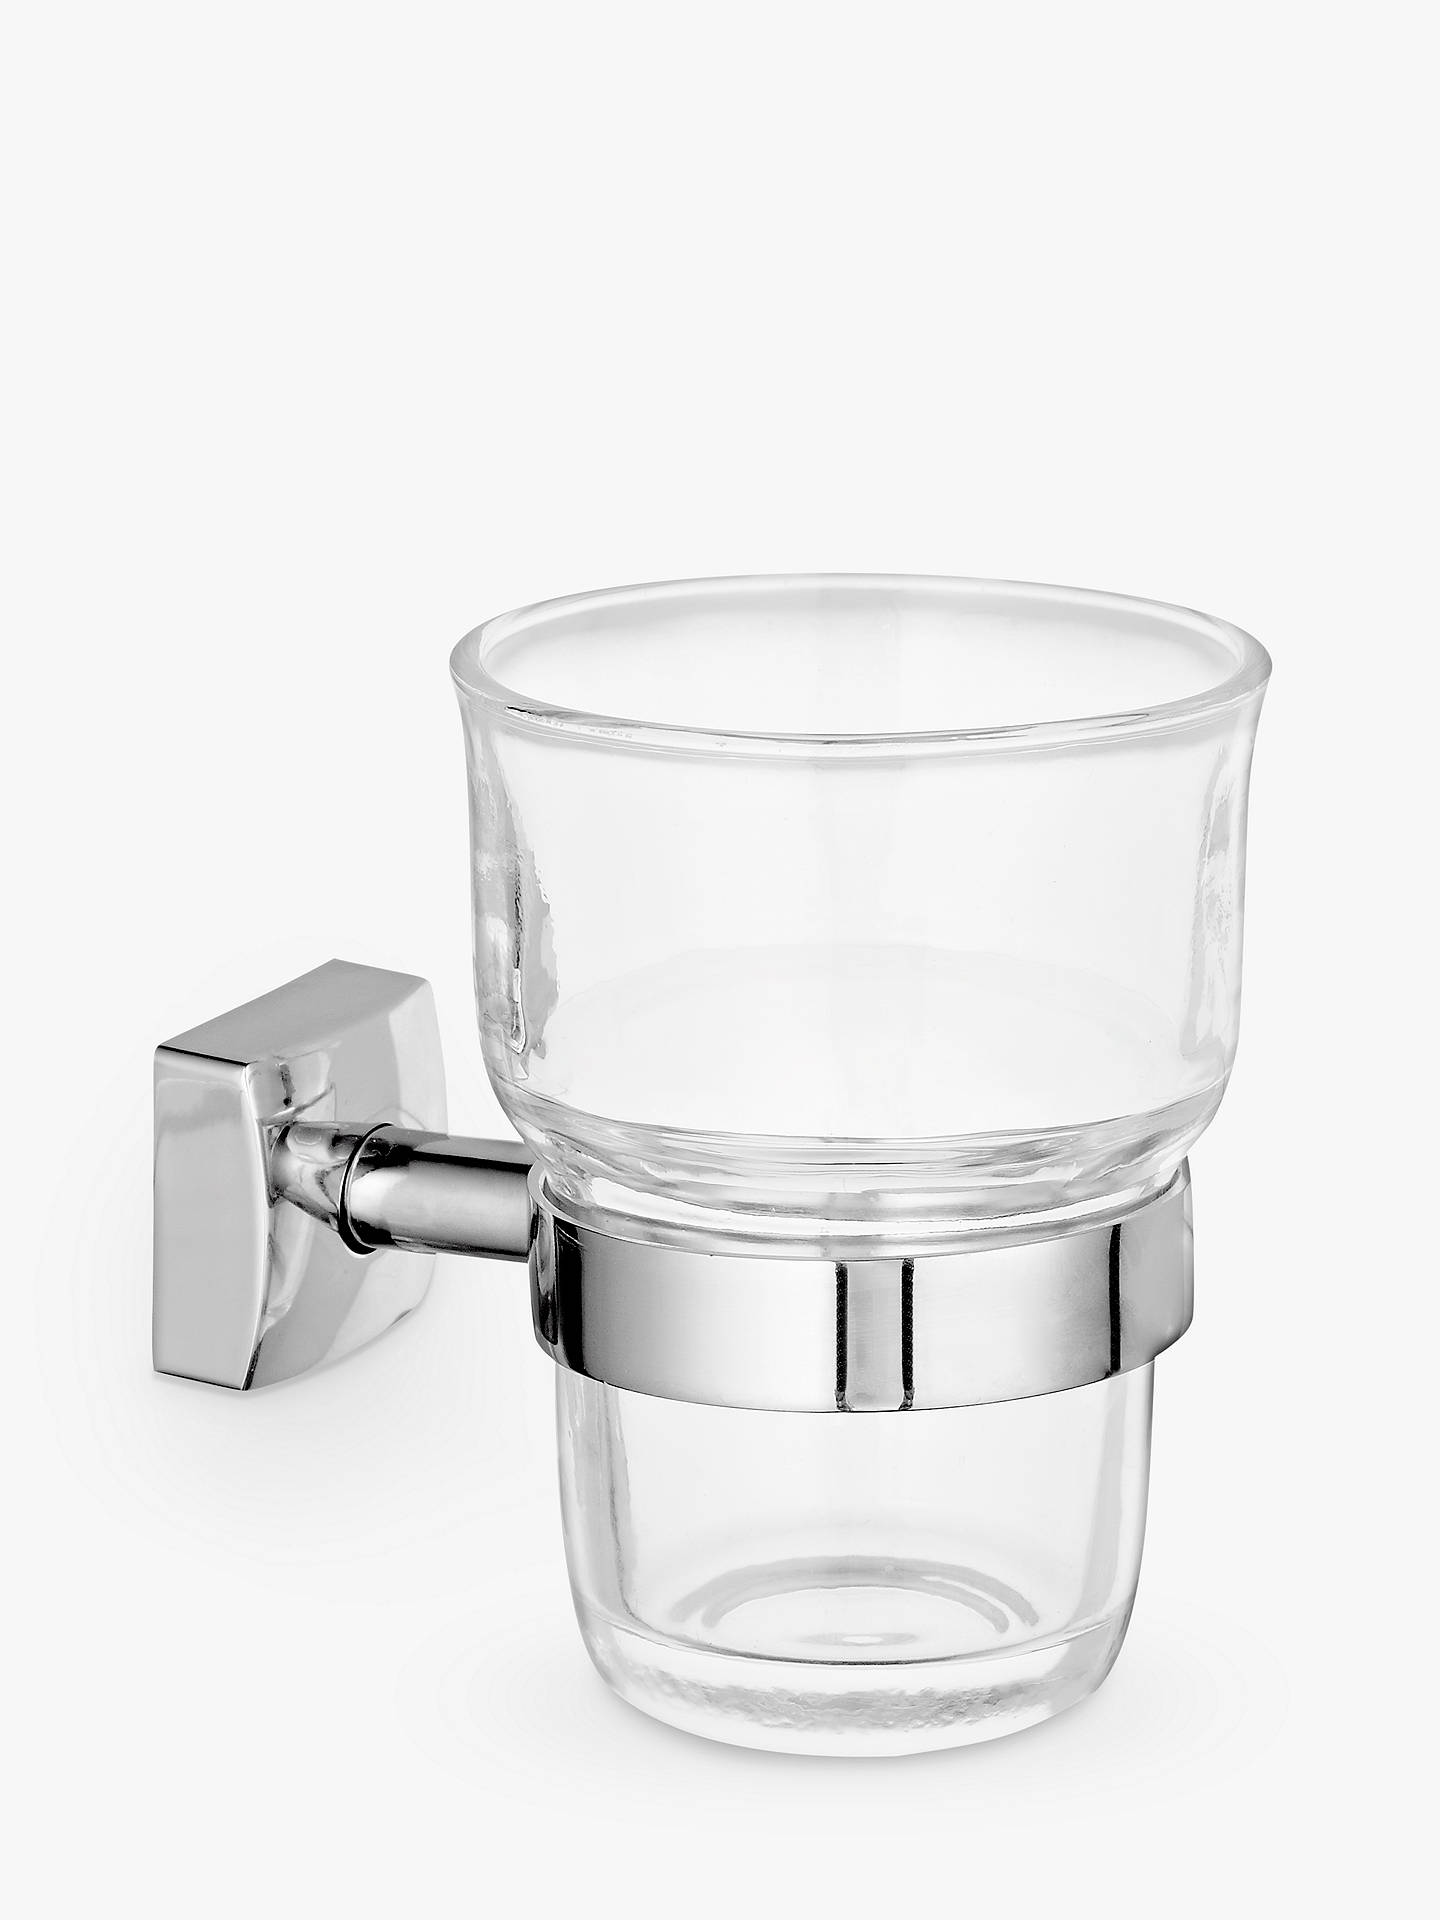 Buy John Lewis & Partners Pure Bathroom Tumbler and Holder, Silver Online at johnlewis.com